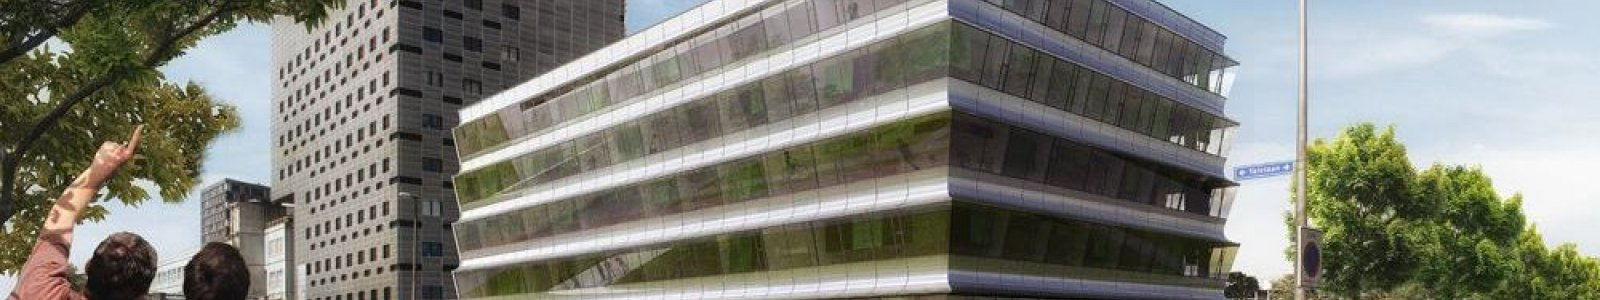 Life sciences incubator real estate and campus utrecht - Utrecht university international office ...